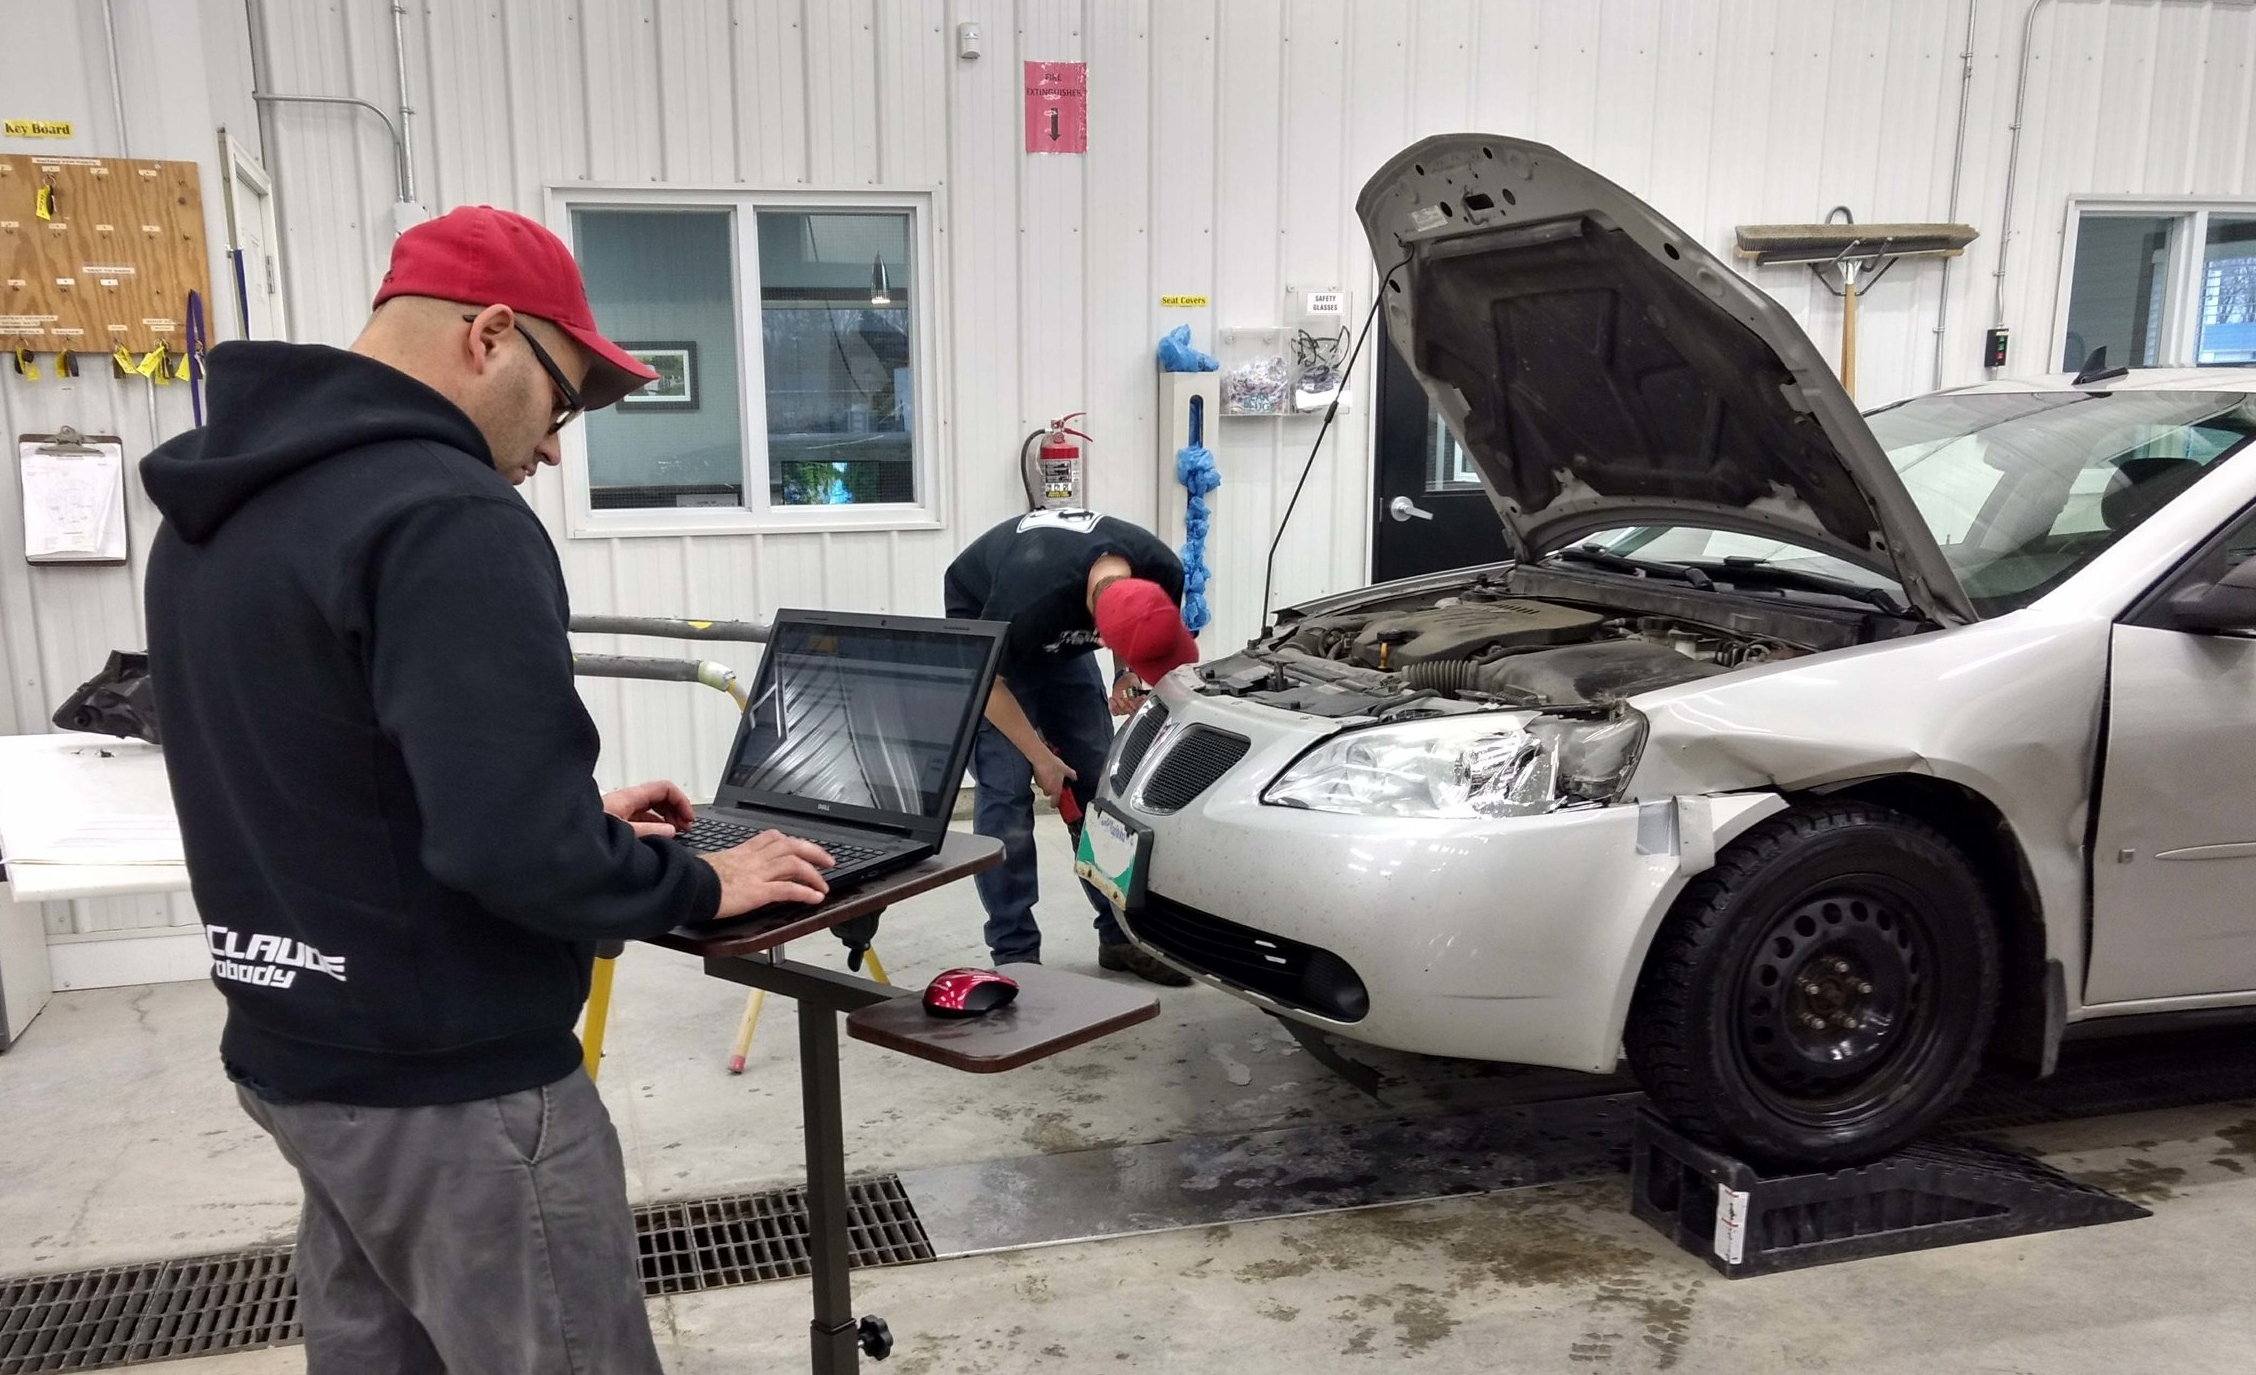 When St.Claude Autobody designed and built their brand new shop in 2014, a dedicated estimating bay was an essential part of their future plans.